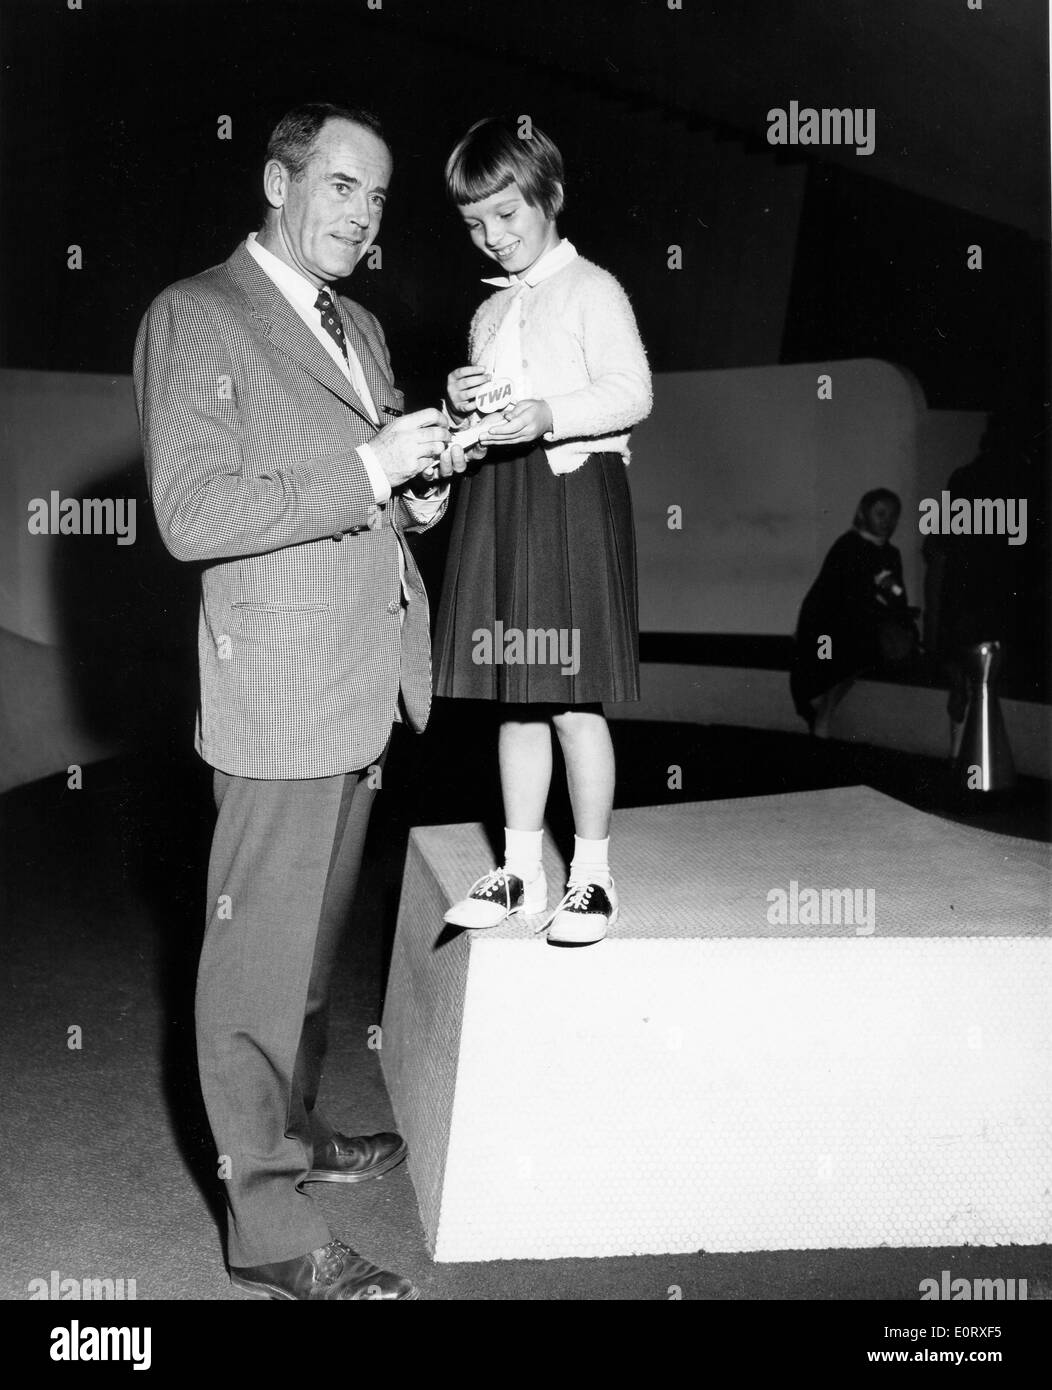 Actor Henry Fonda signs autograph for little girl - Stock Image